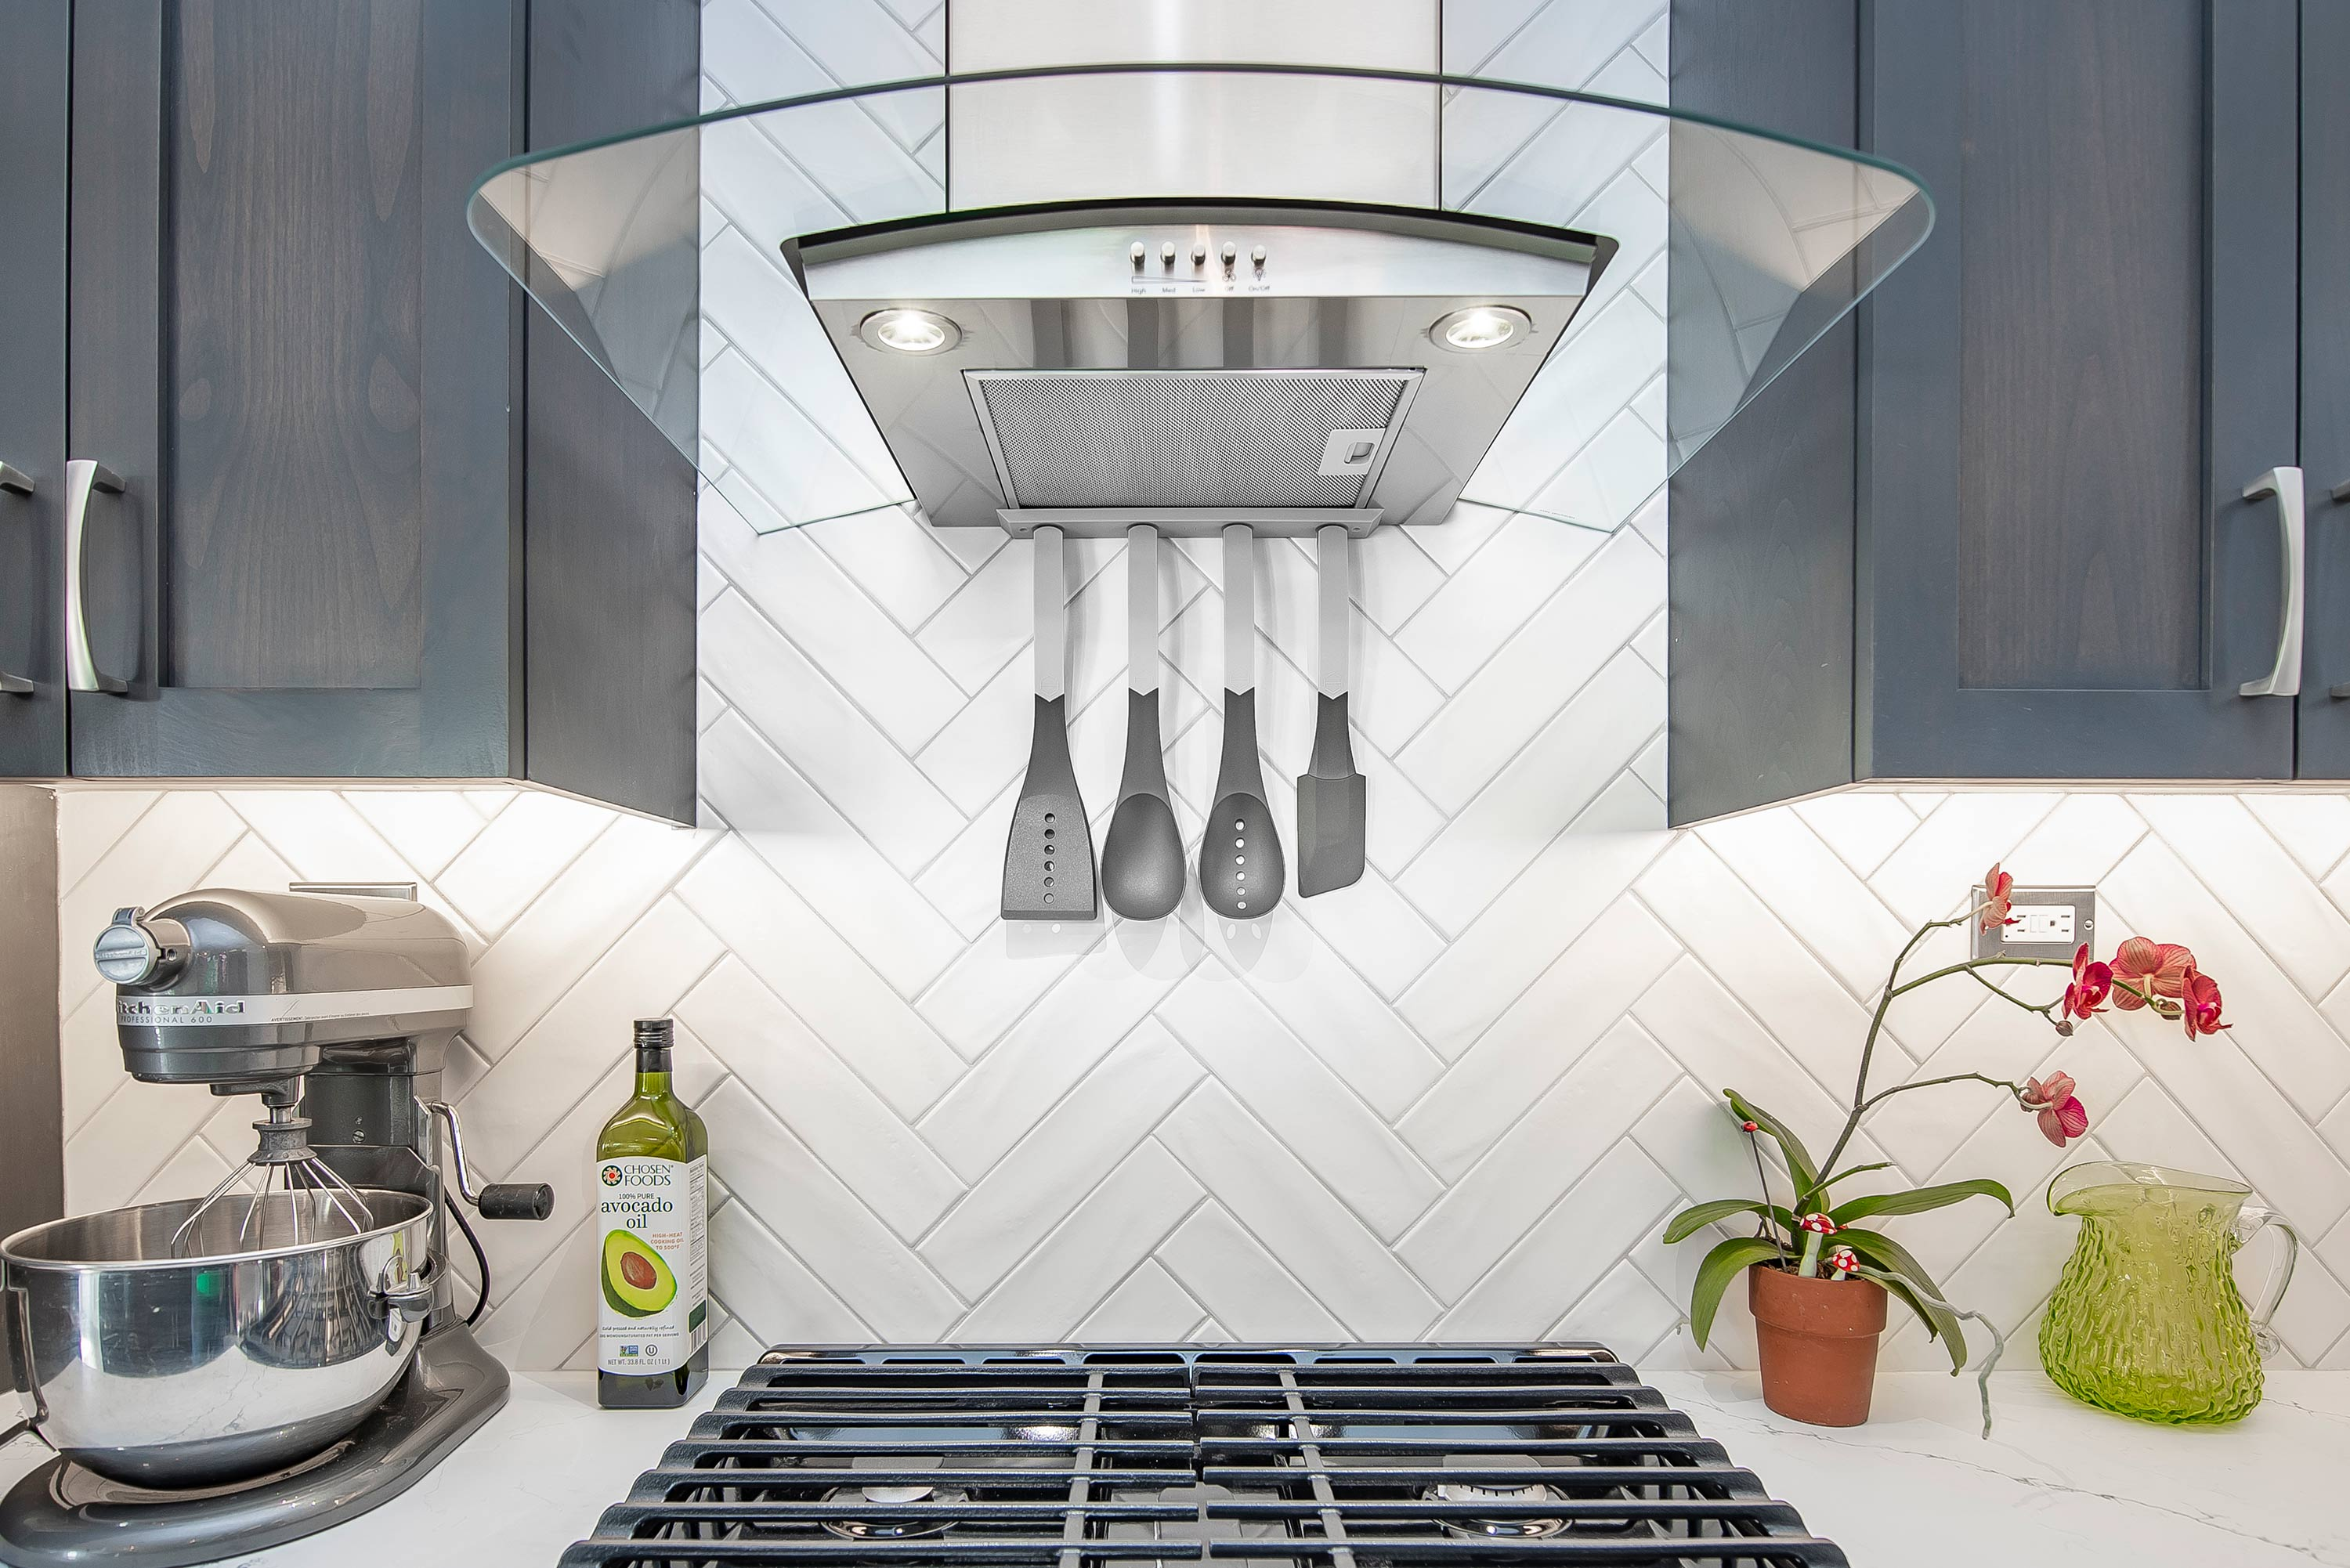 Magnetic Utensil Rack attached to vent hood by powerful magnets